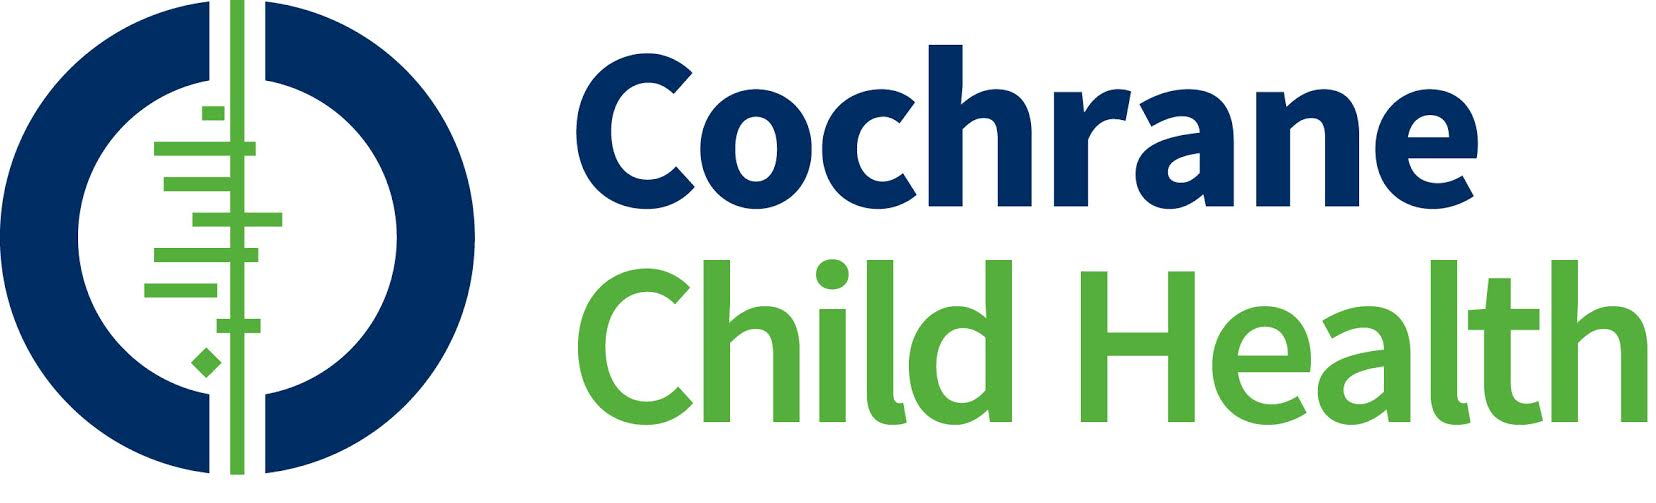 Cochrane Child Health